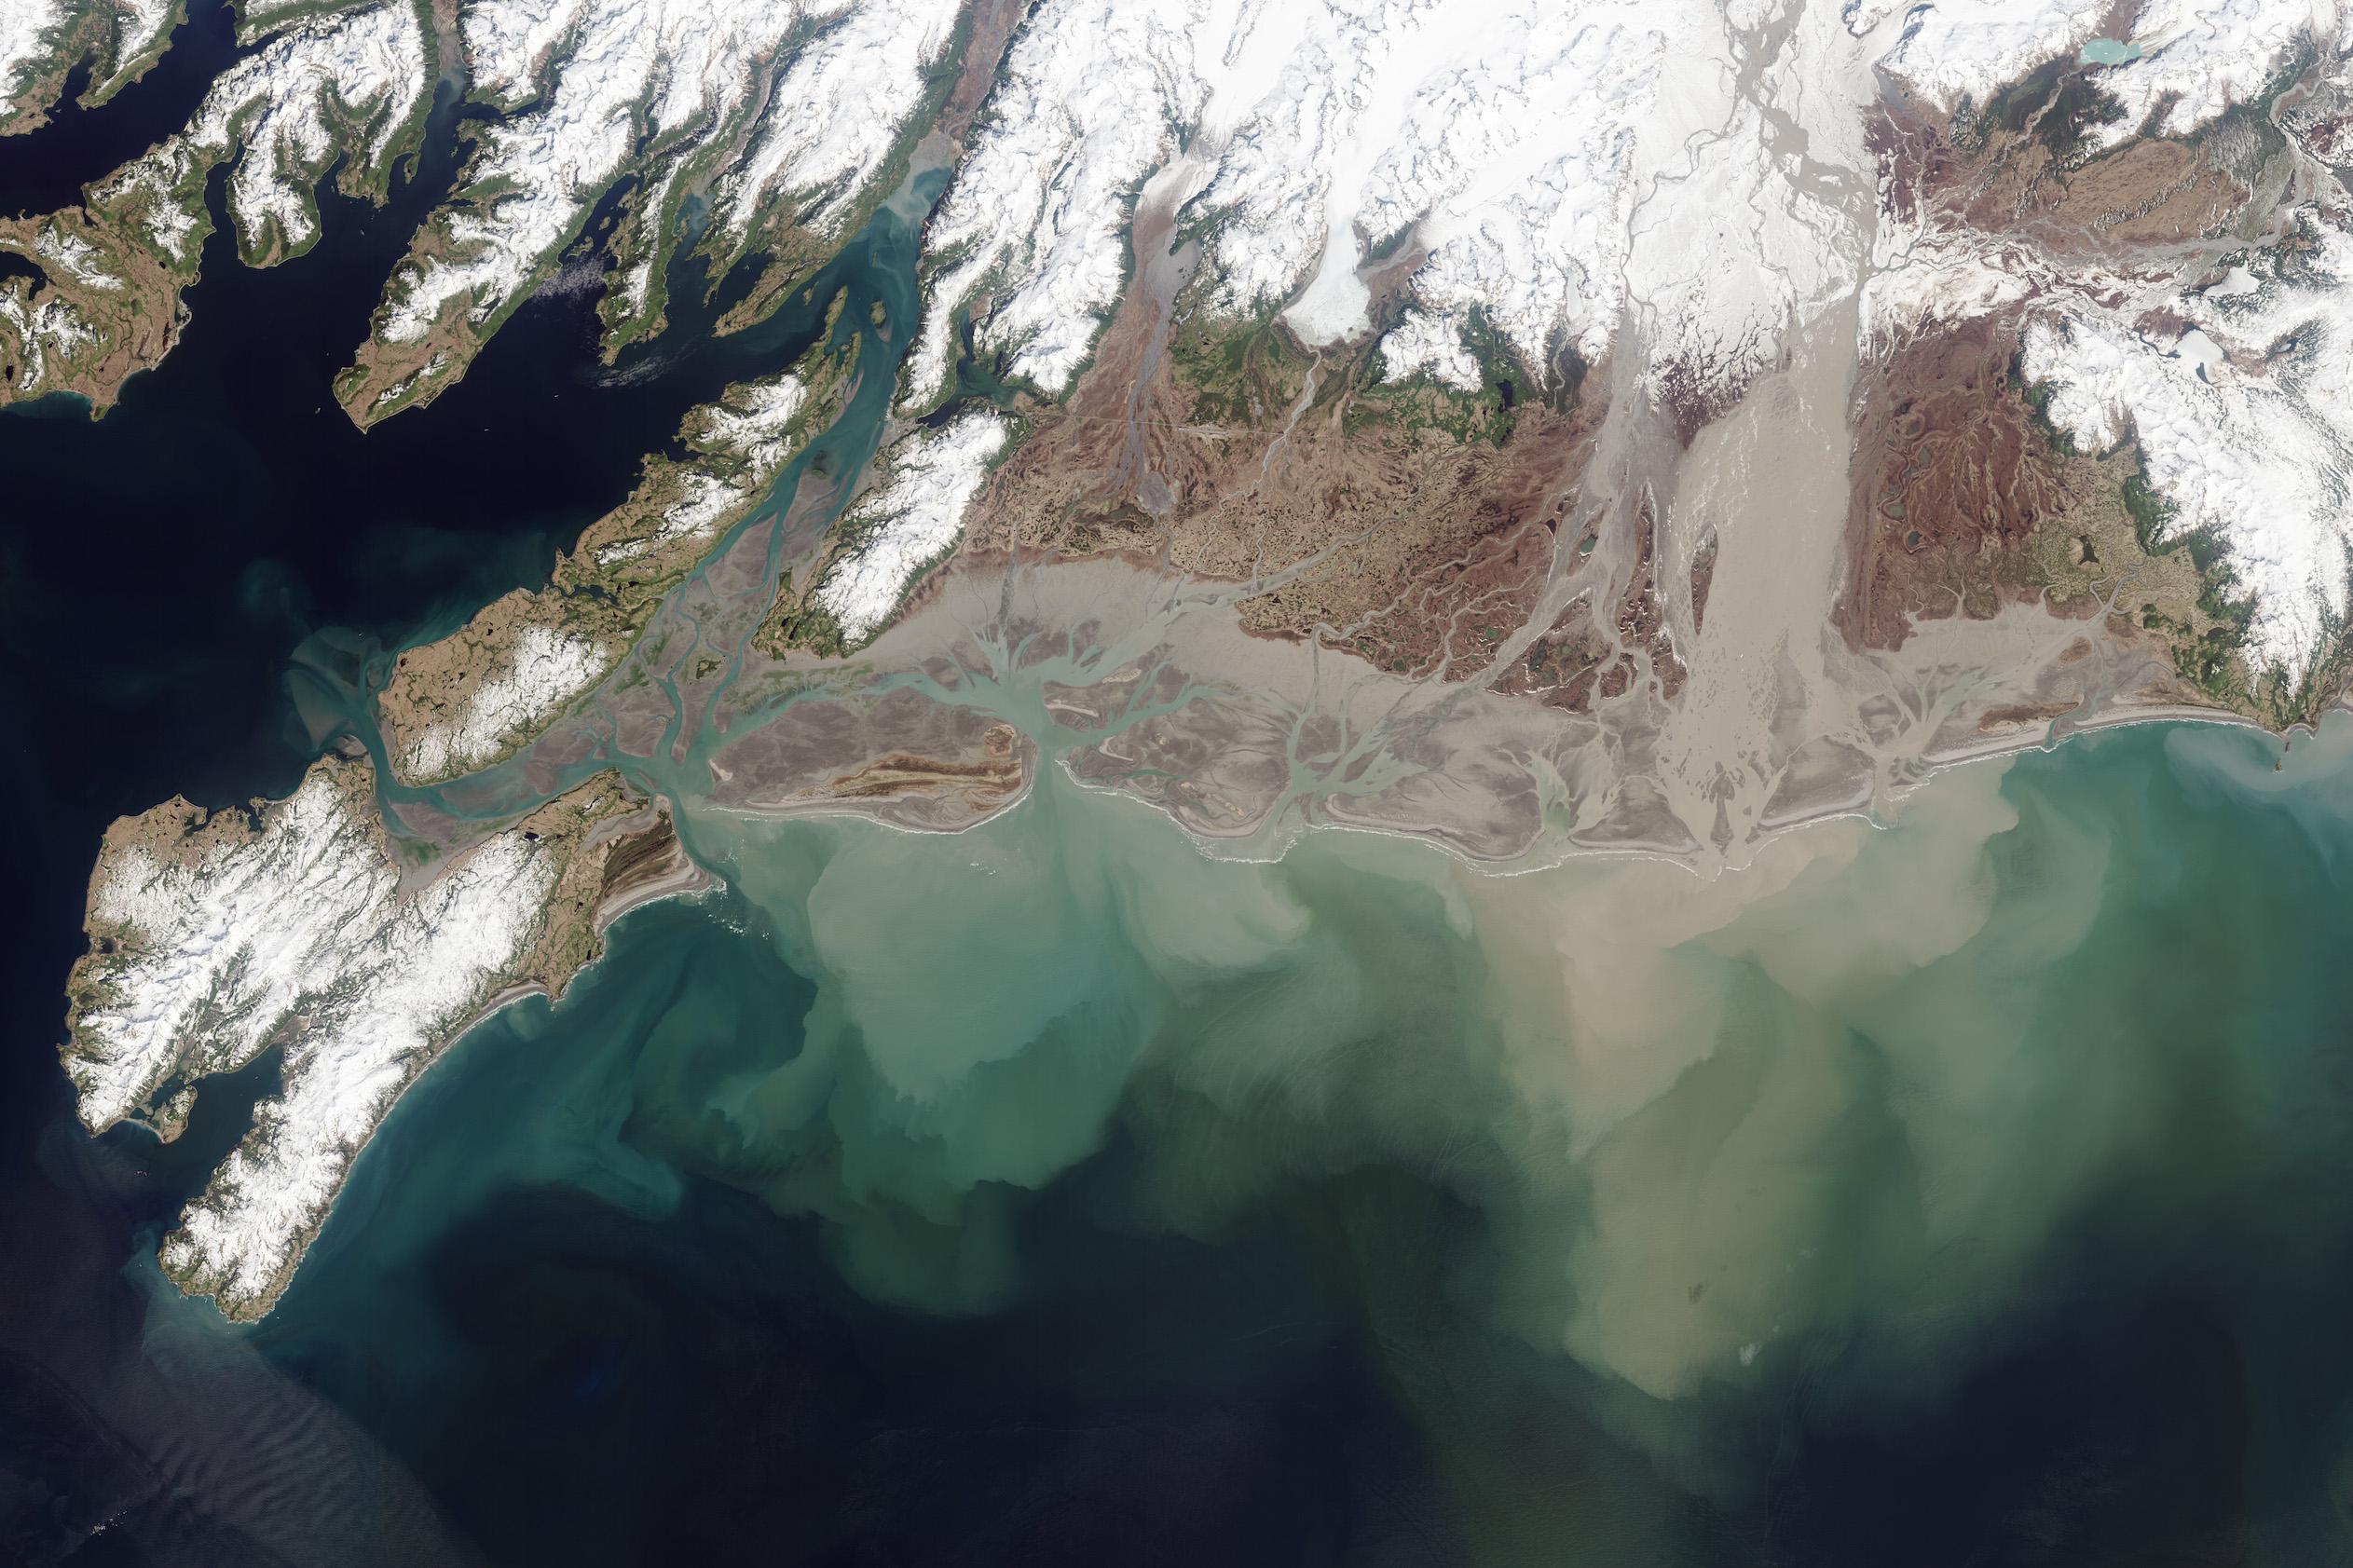 Today's Image of the Day comes thanks to the NASA Earth Observatory and features a look at the Copper River draining into the Gulf of Alaska.